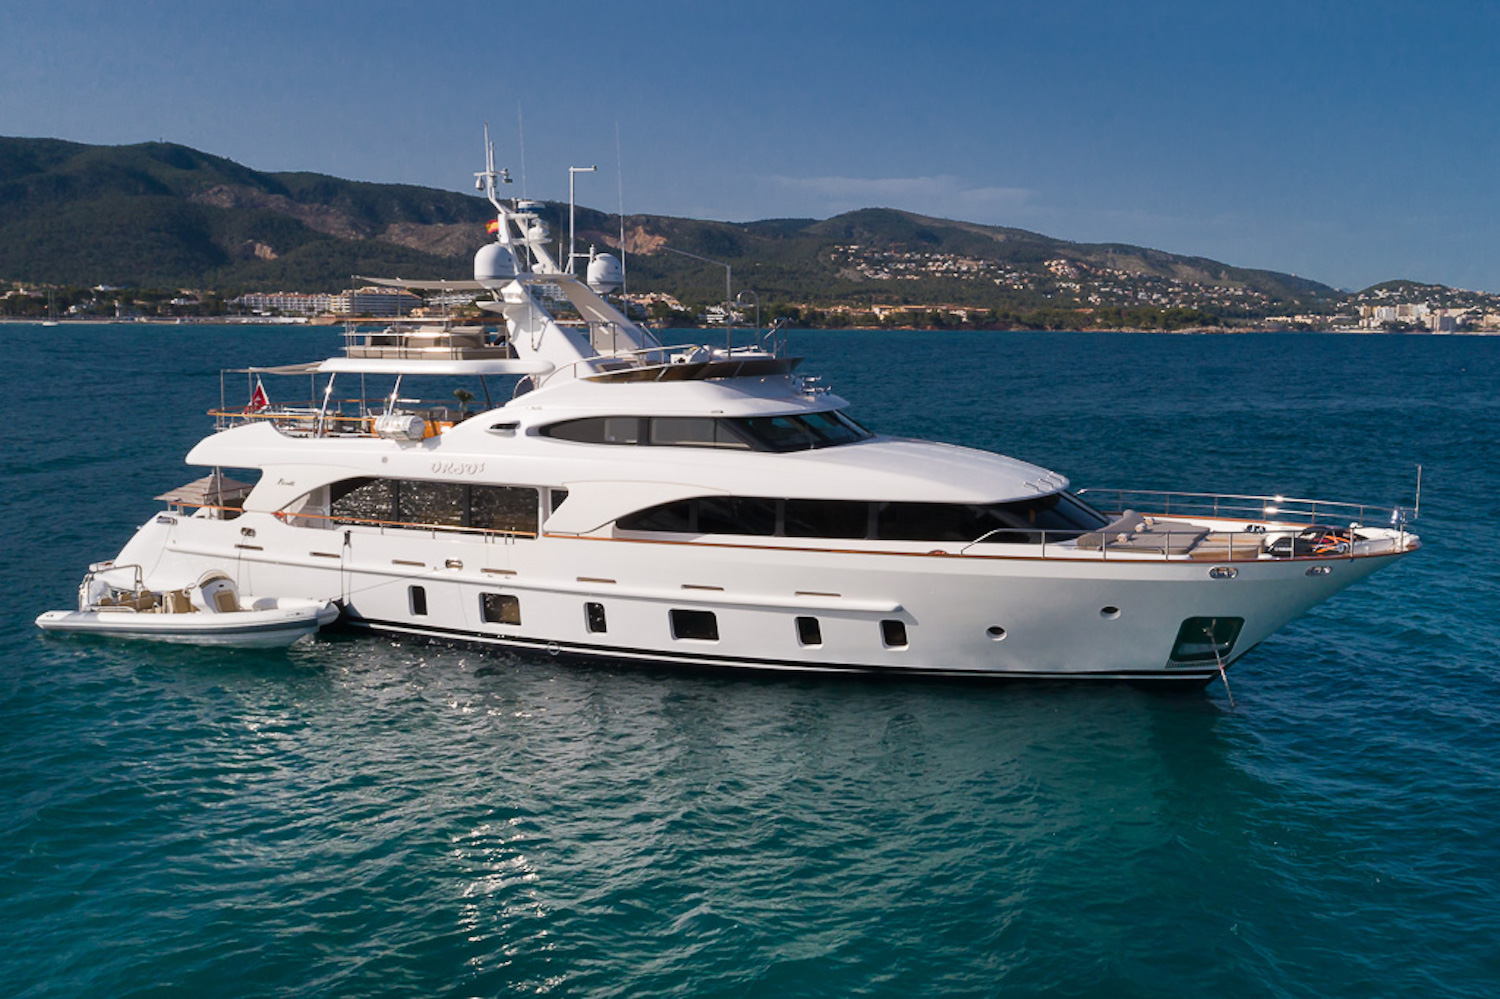 Luxury motor yacht ORSO 3 available for charter in the Balearics